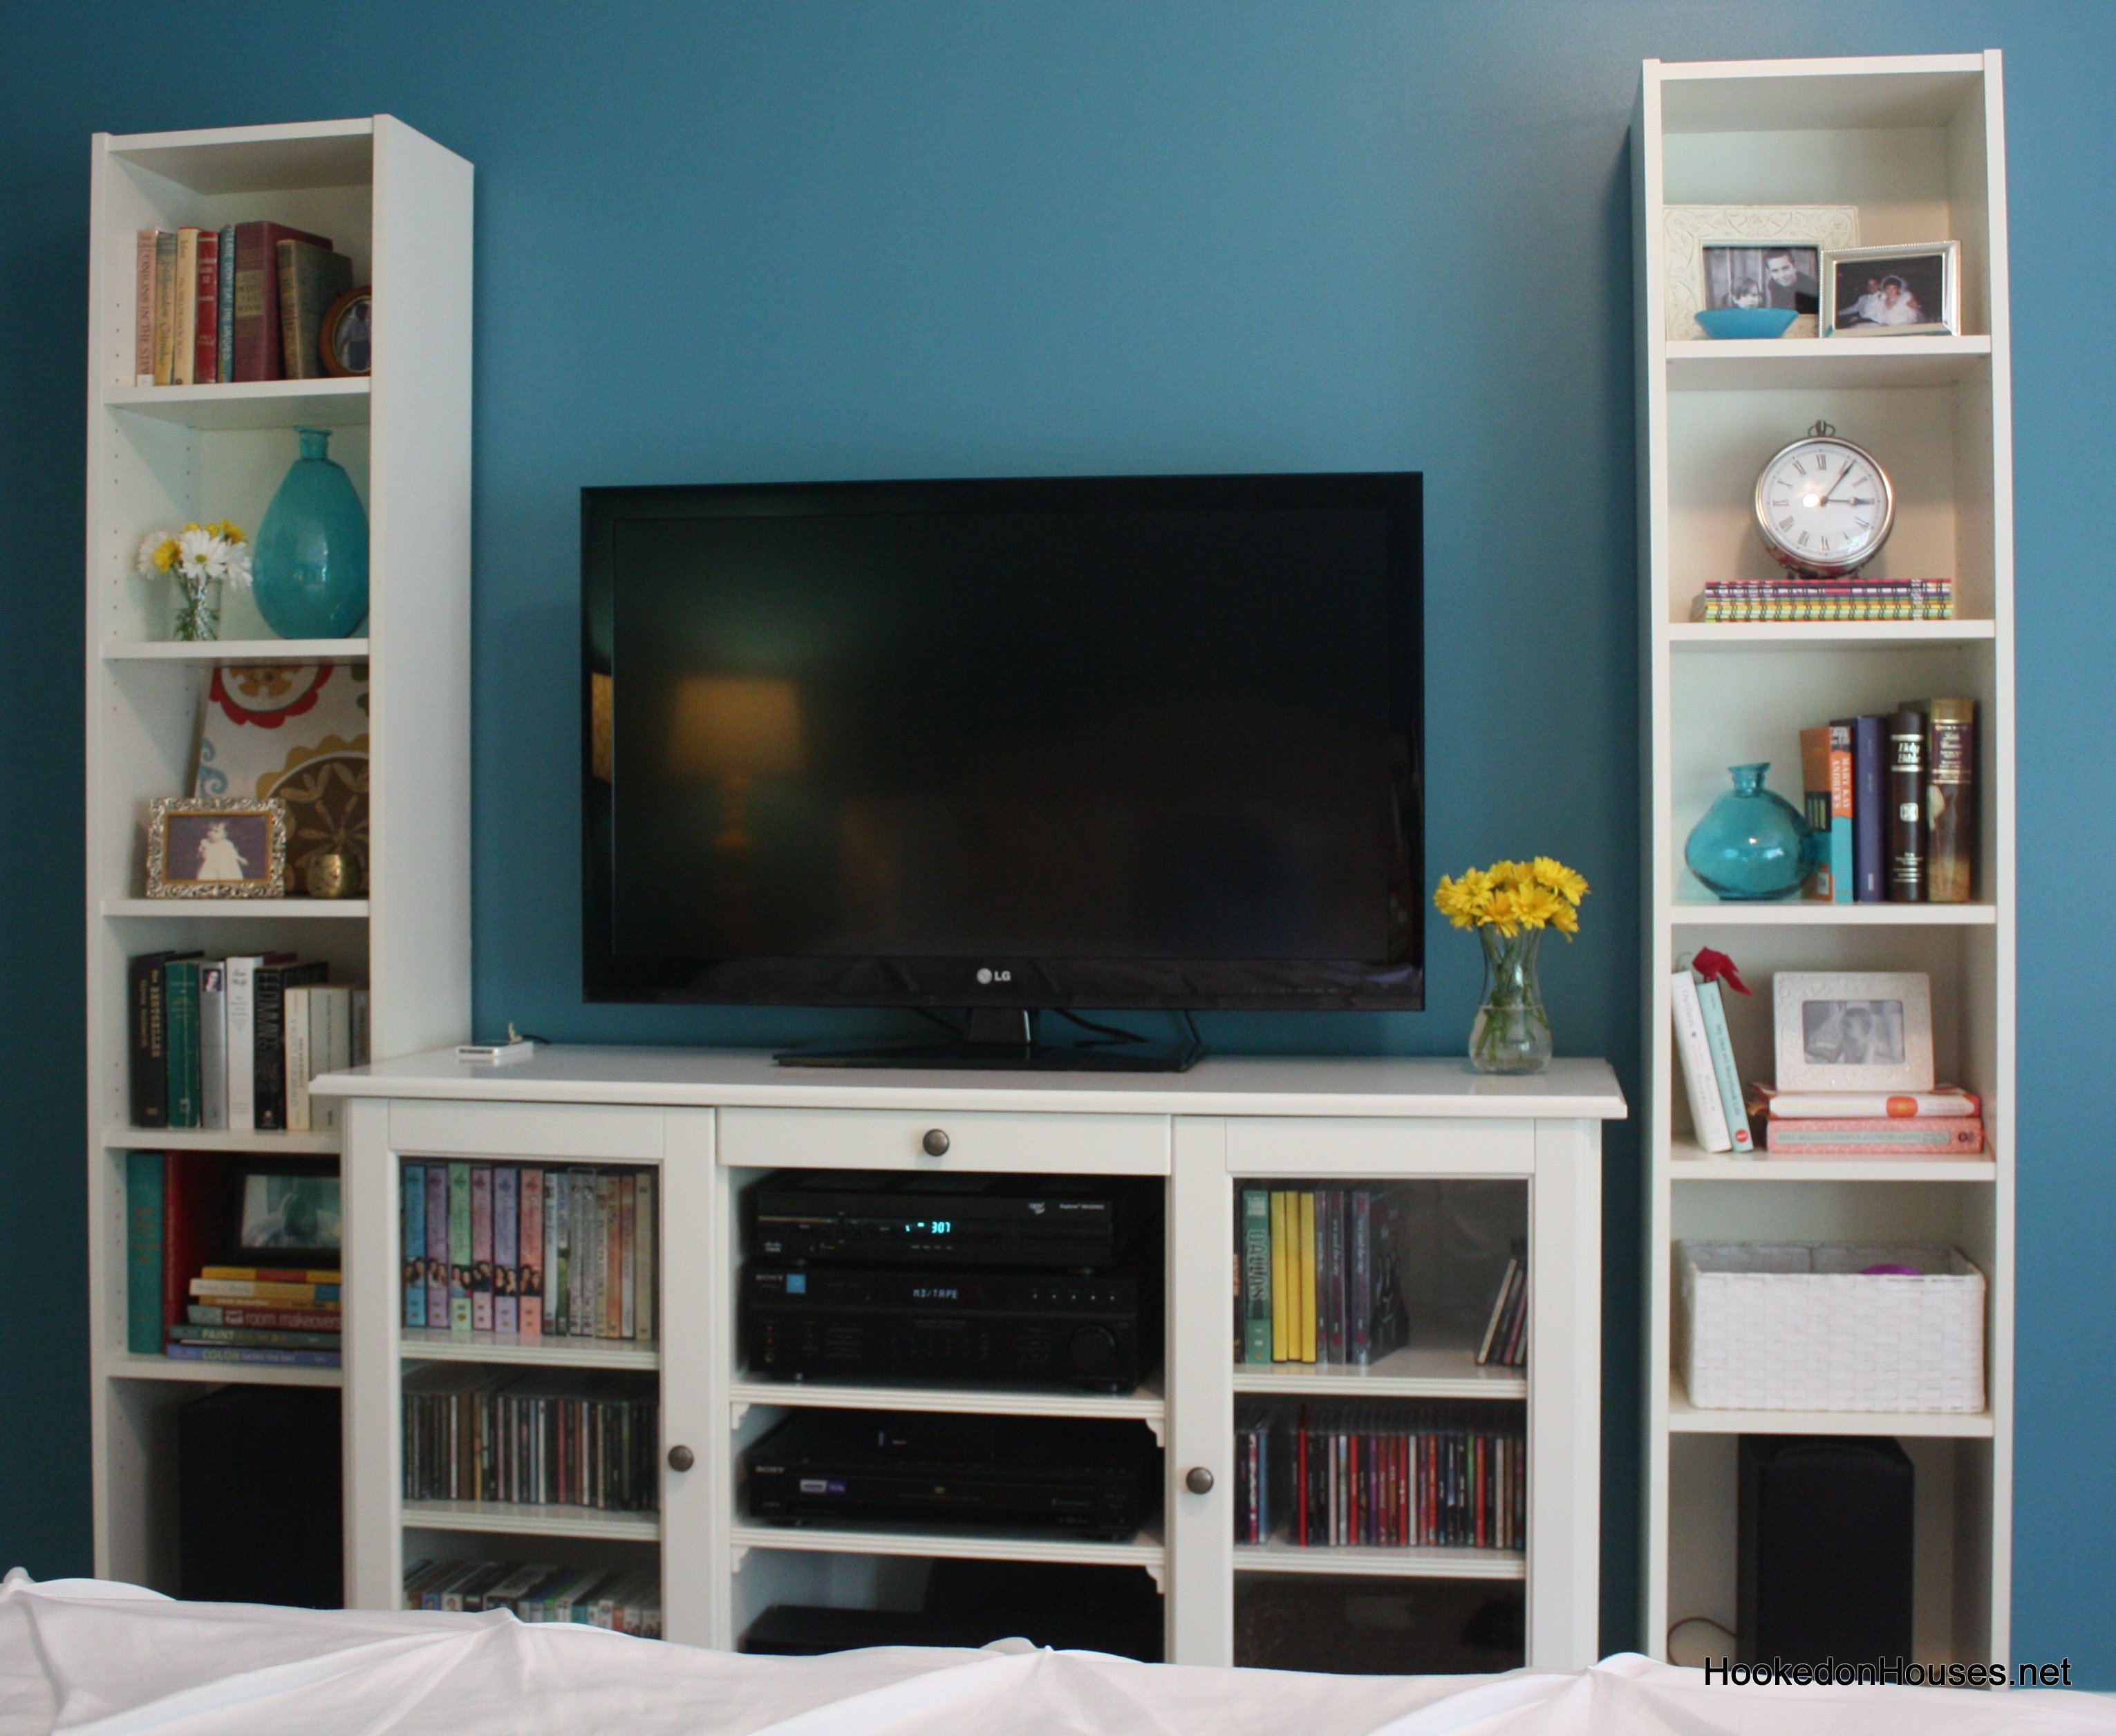 Ikea Bookcase Tv Stand Photo Home Furniture Ideas Pertaining To Tv Book Case (View 13 of 14)